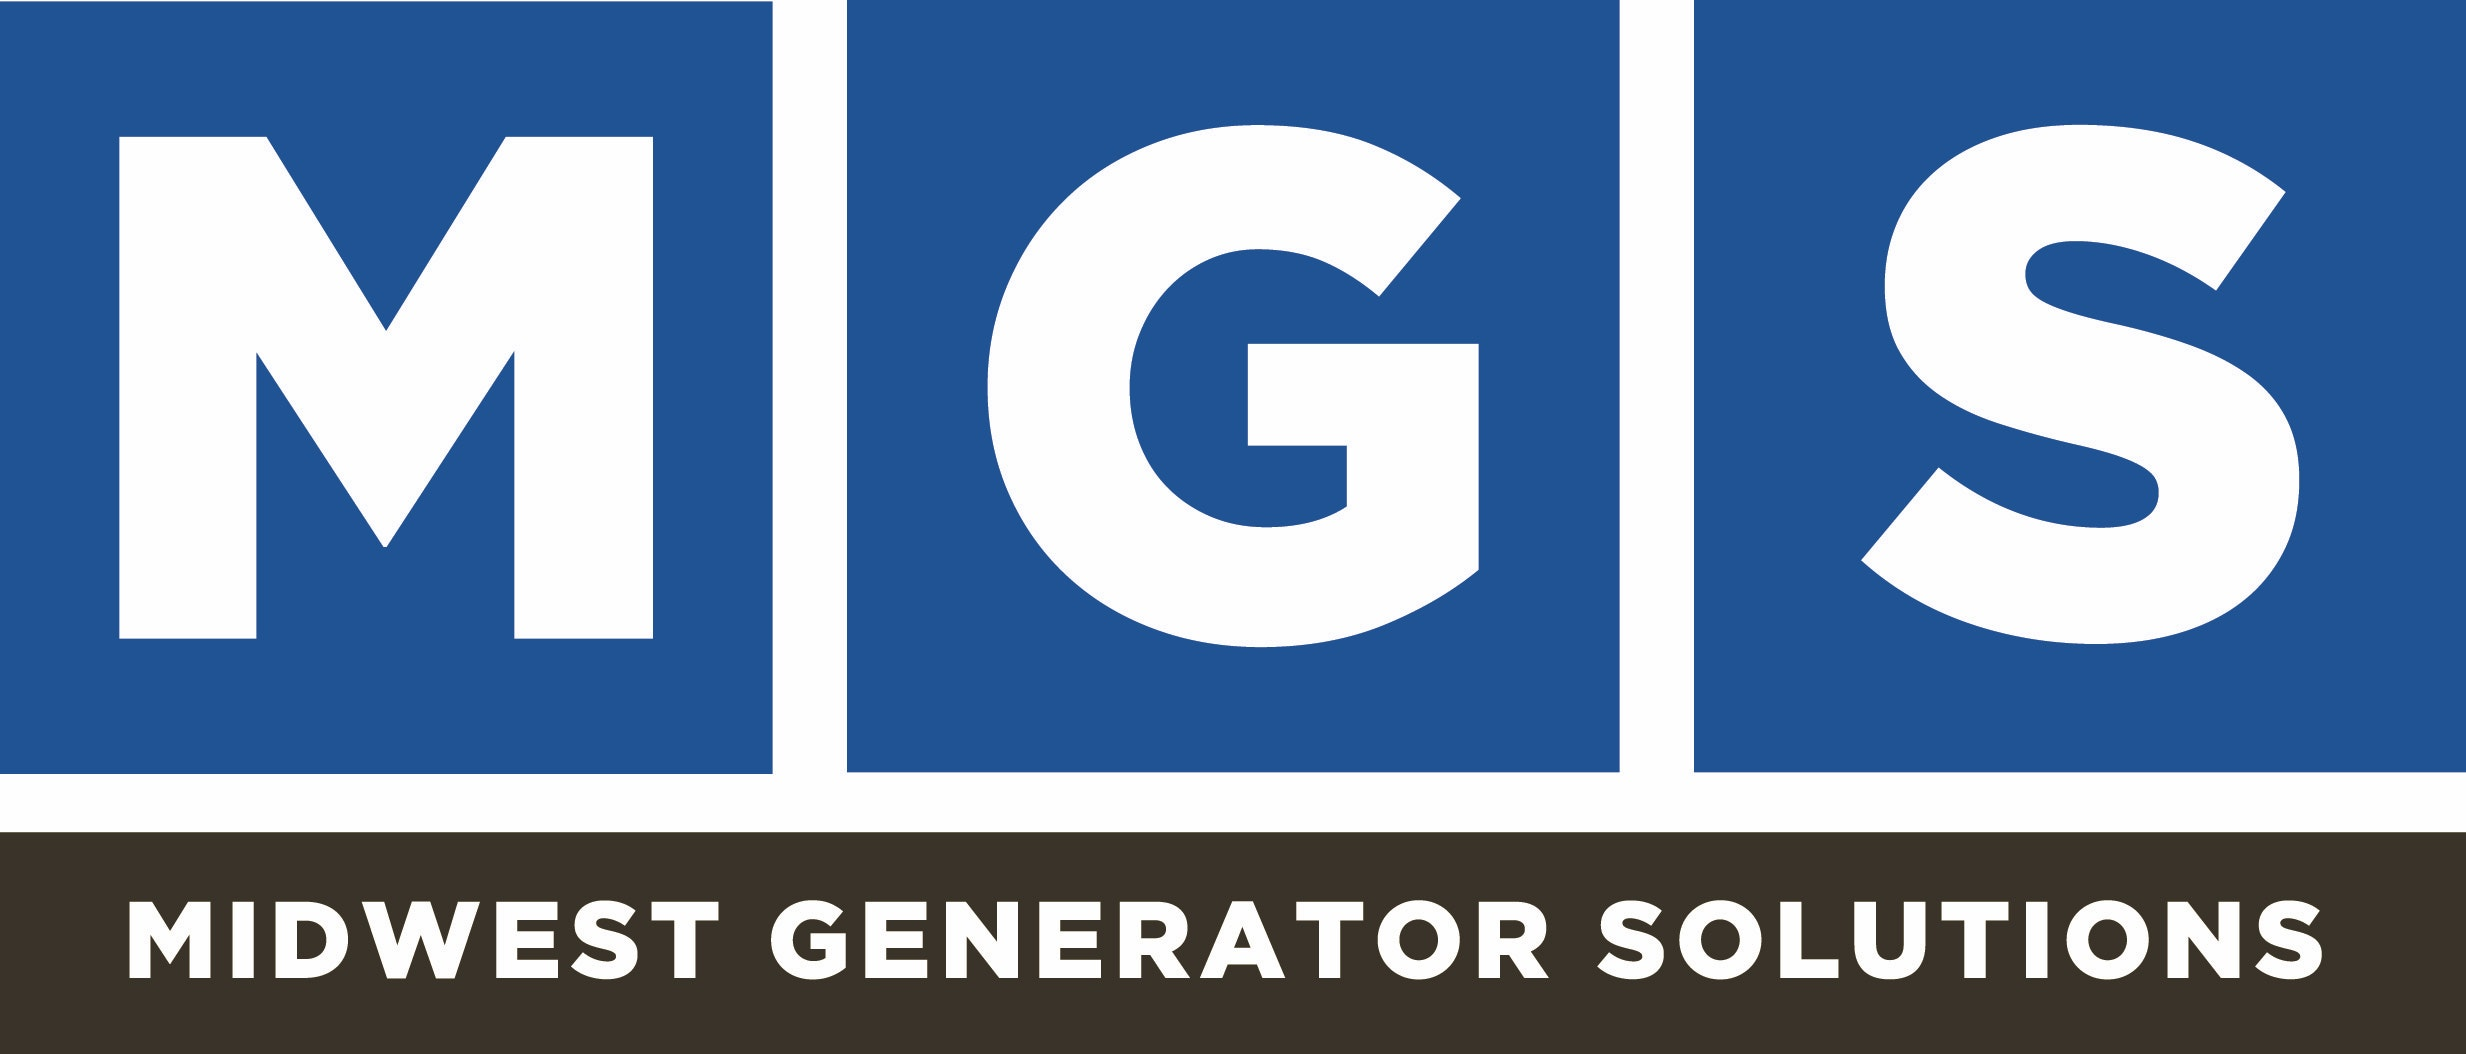 Midwest Generator Solutions Logo